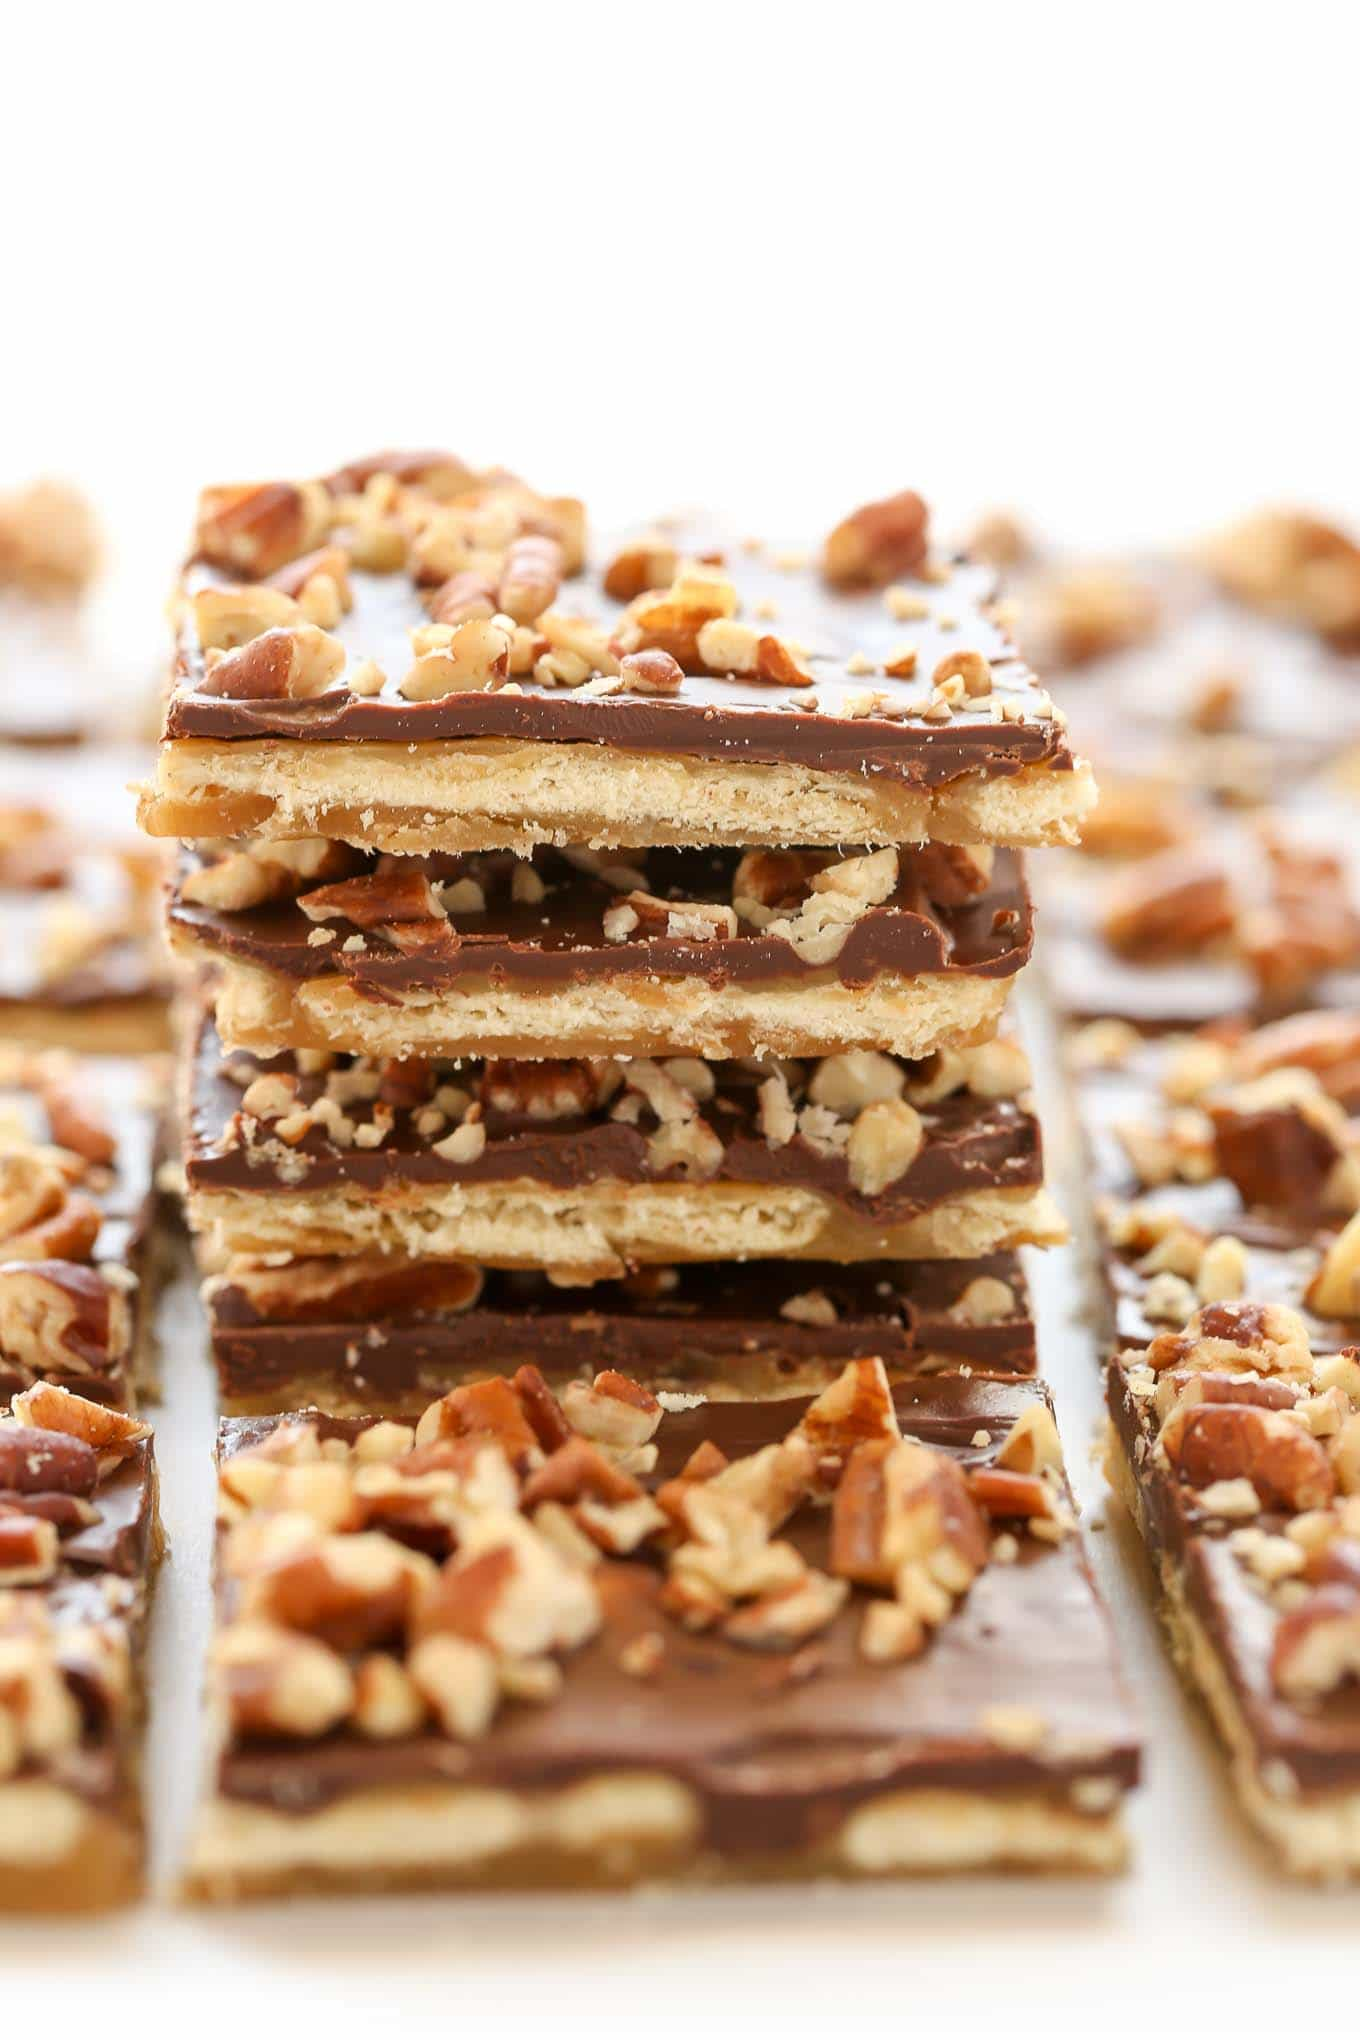 This Saltine Toffee candy is made with just 5 ingredients and so easy to make. Perfect for an easy treat during the holidays!